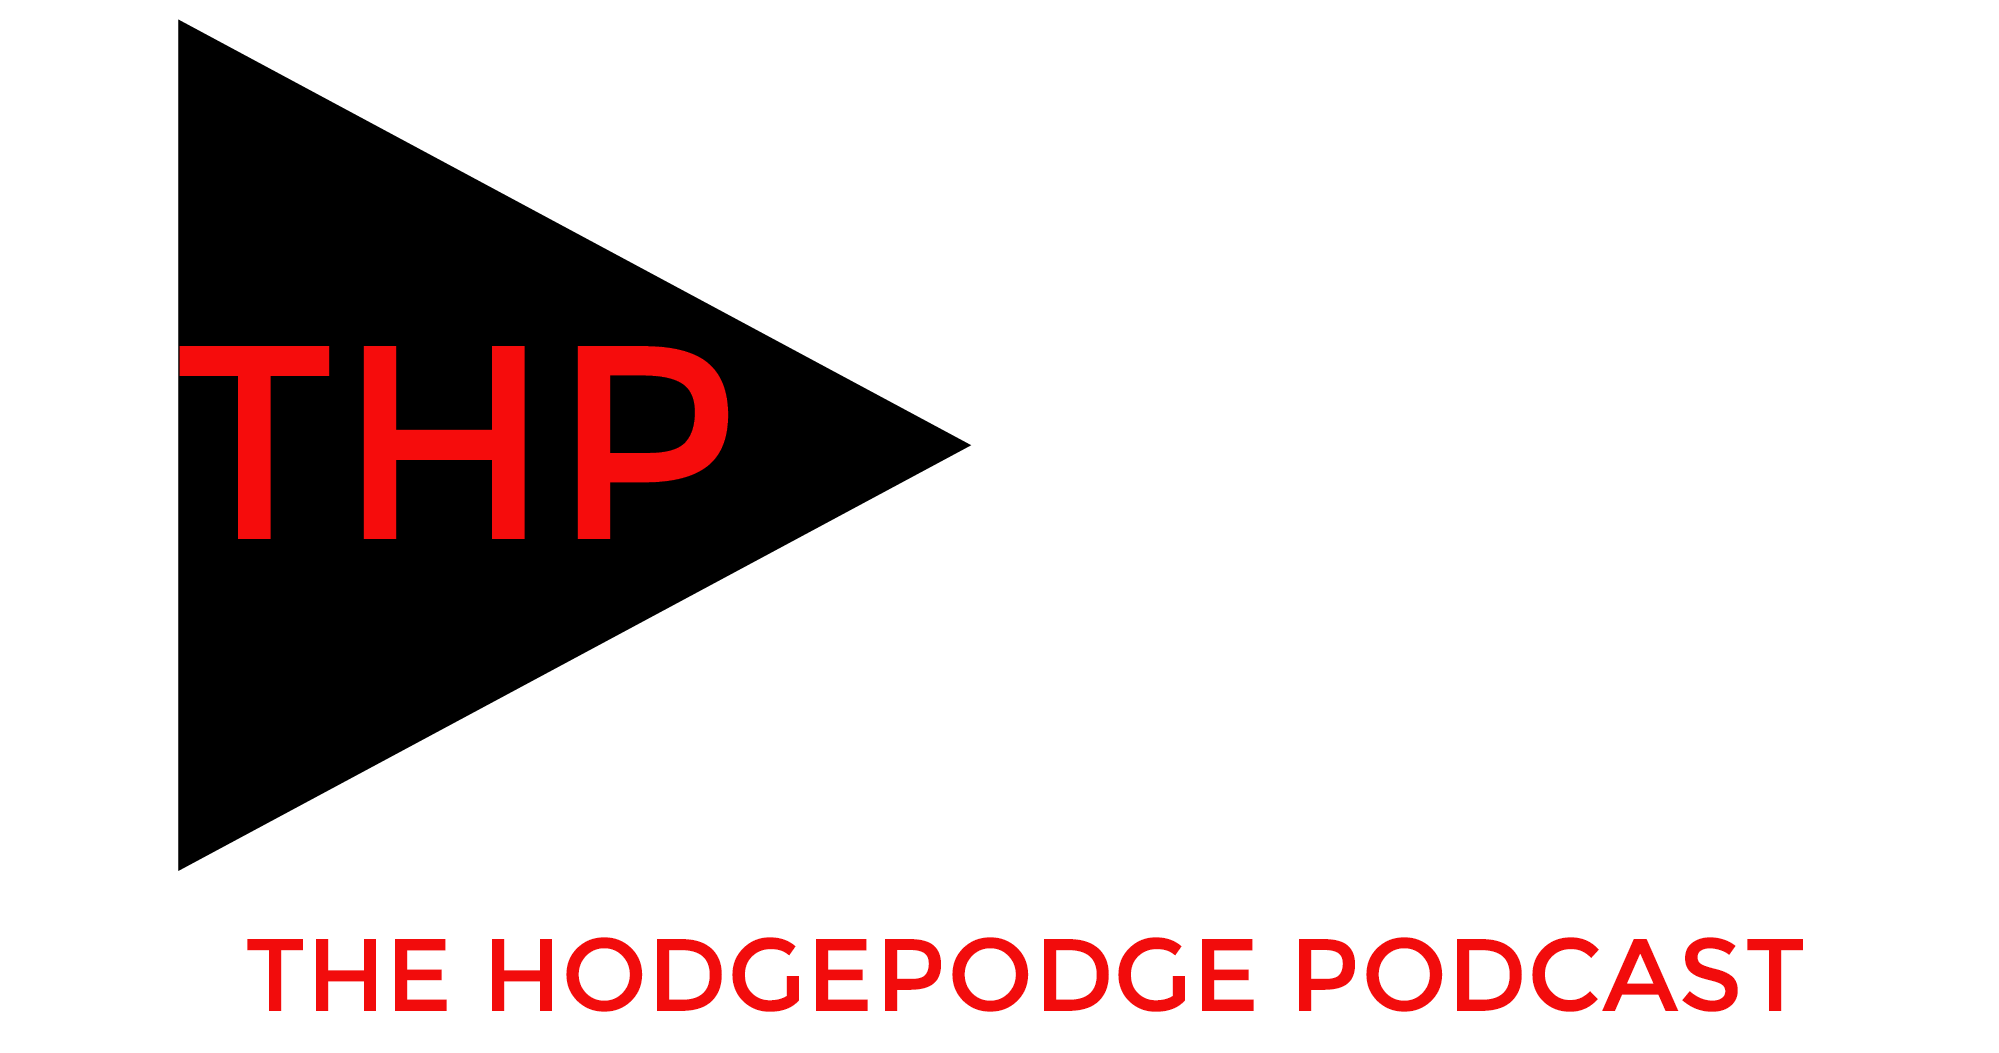 Podcasts – The Hodgepodge Podcast